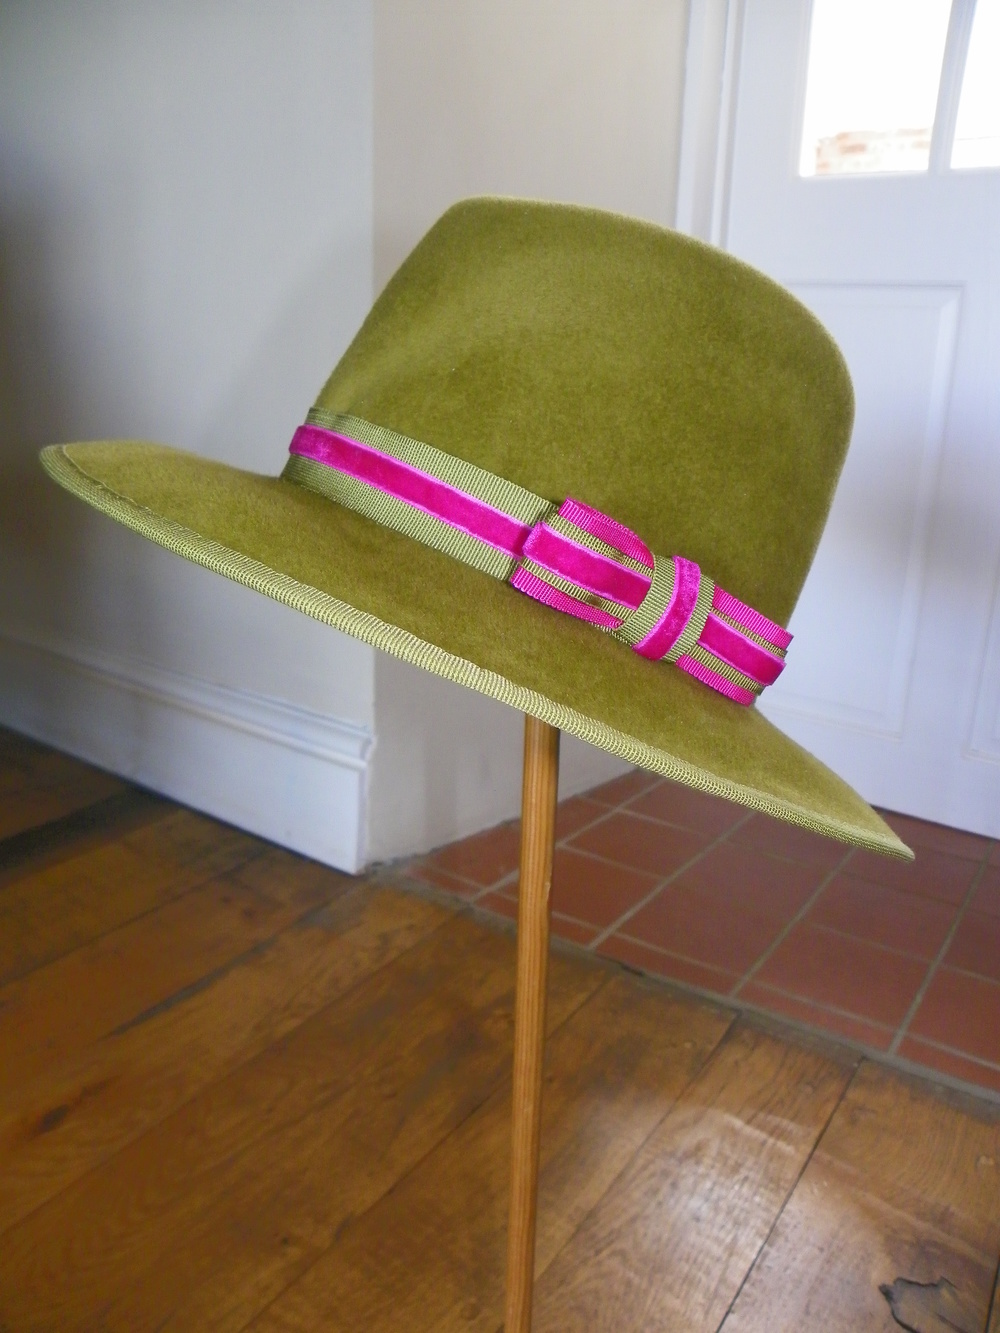 Peachbloom trilby hat in olive green and pink velvet edging